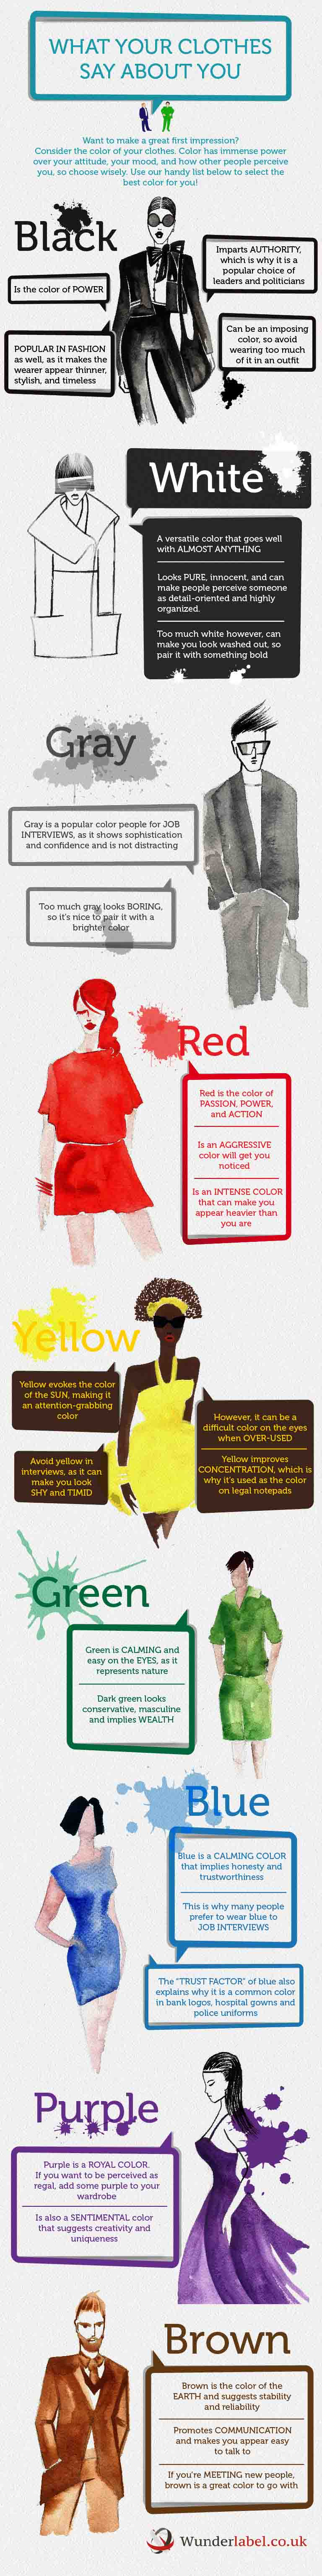 What Your Clothes Colors Say Infographic